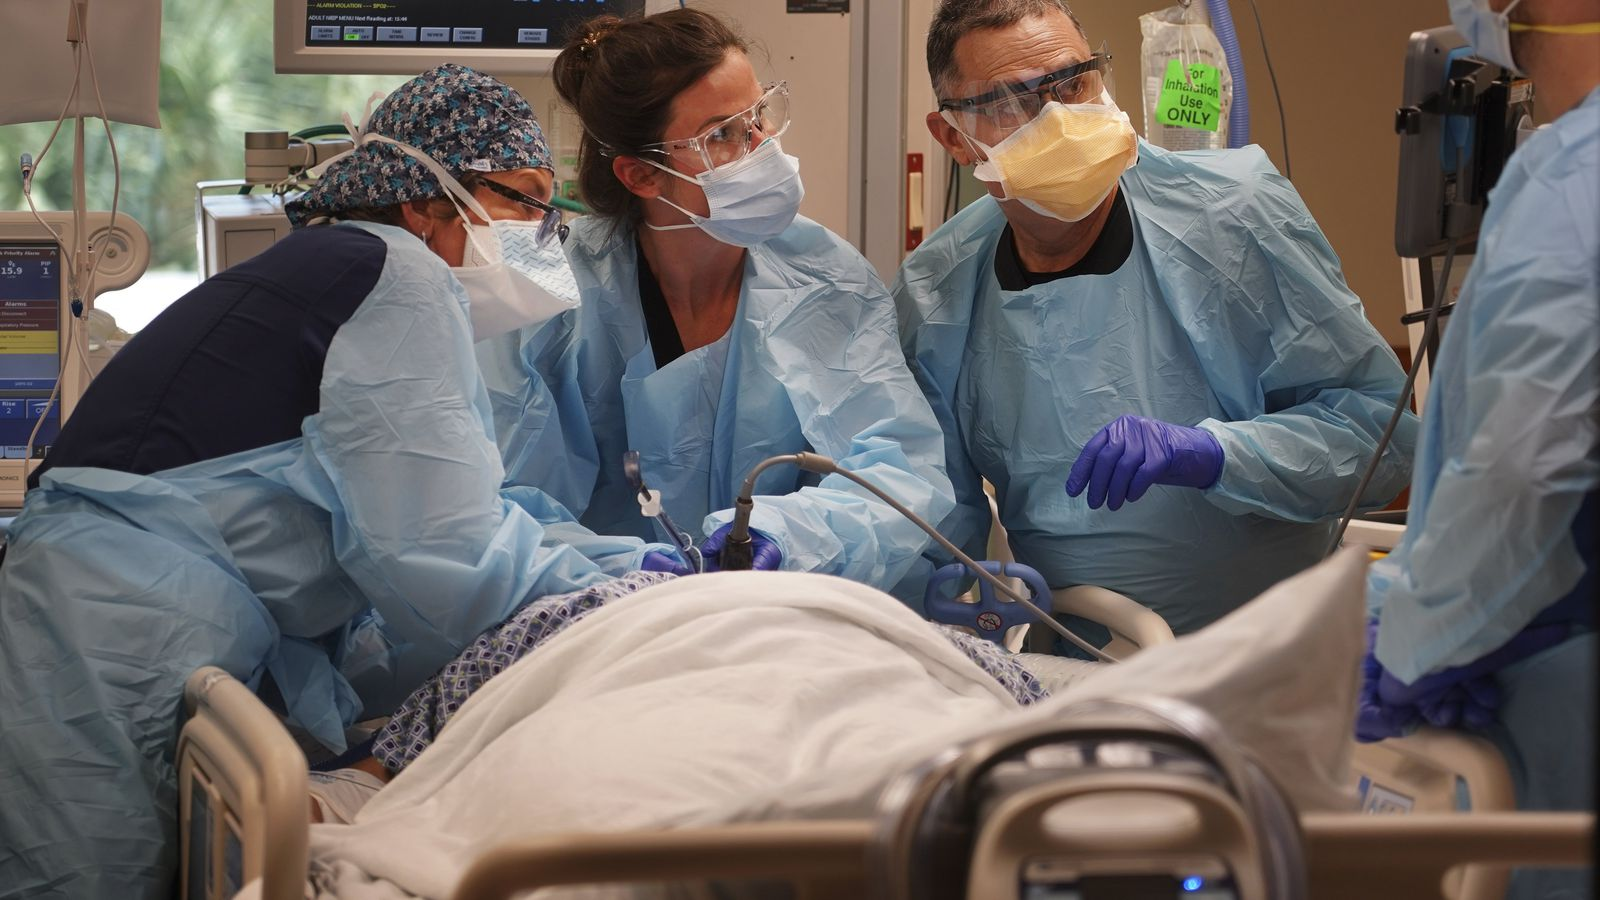 Medical workers in the Intensive Care Unit try to stabilize a patient who has been battling the virus. From mid-July through August, 43 people died of COVID-19 at Morton Plant Hospital in Clearwater. More than 75 percent of them were unvaccinated.